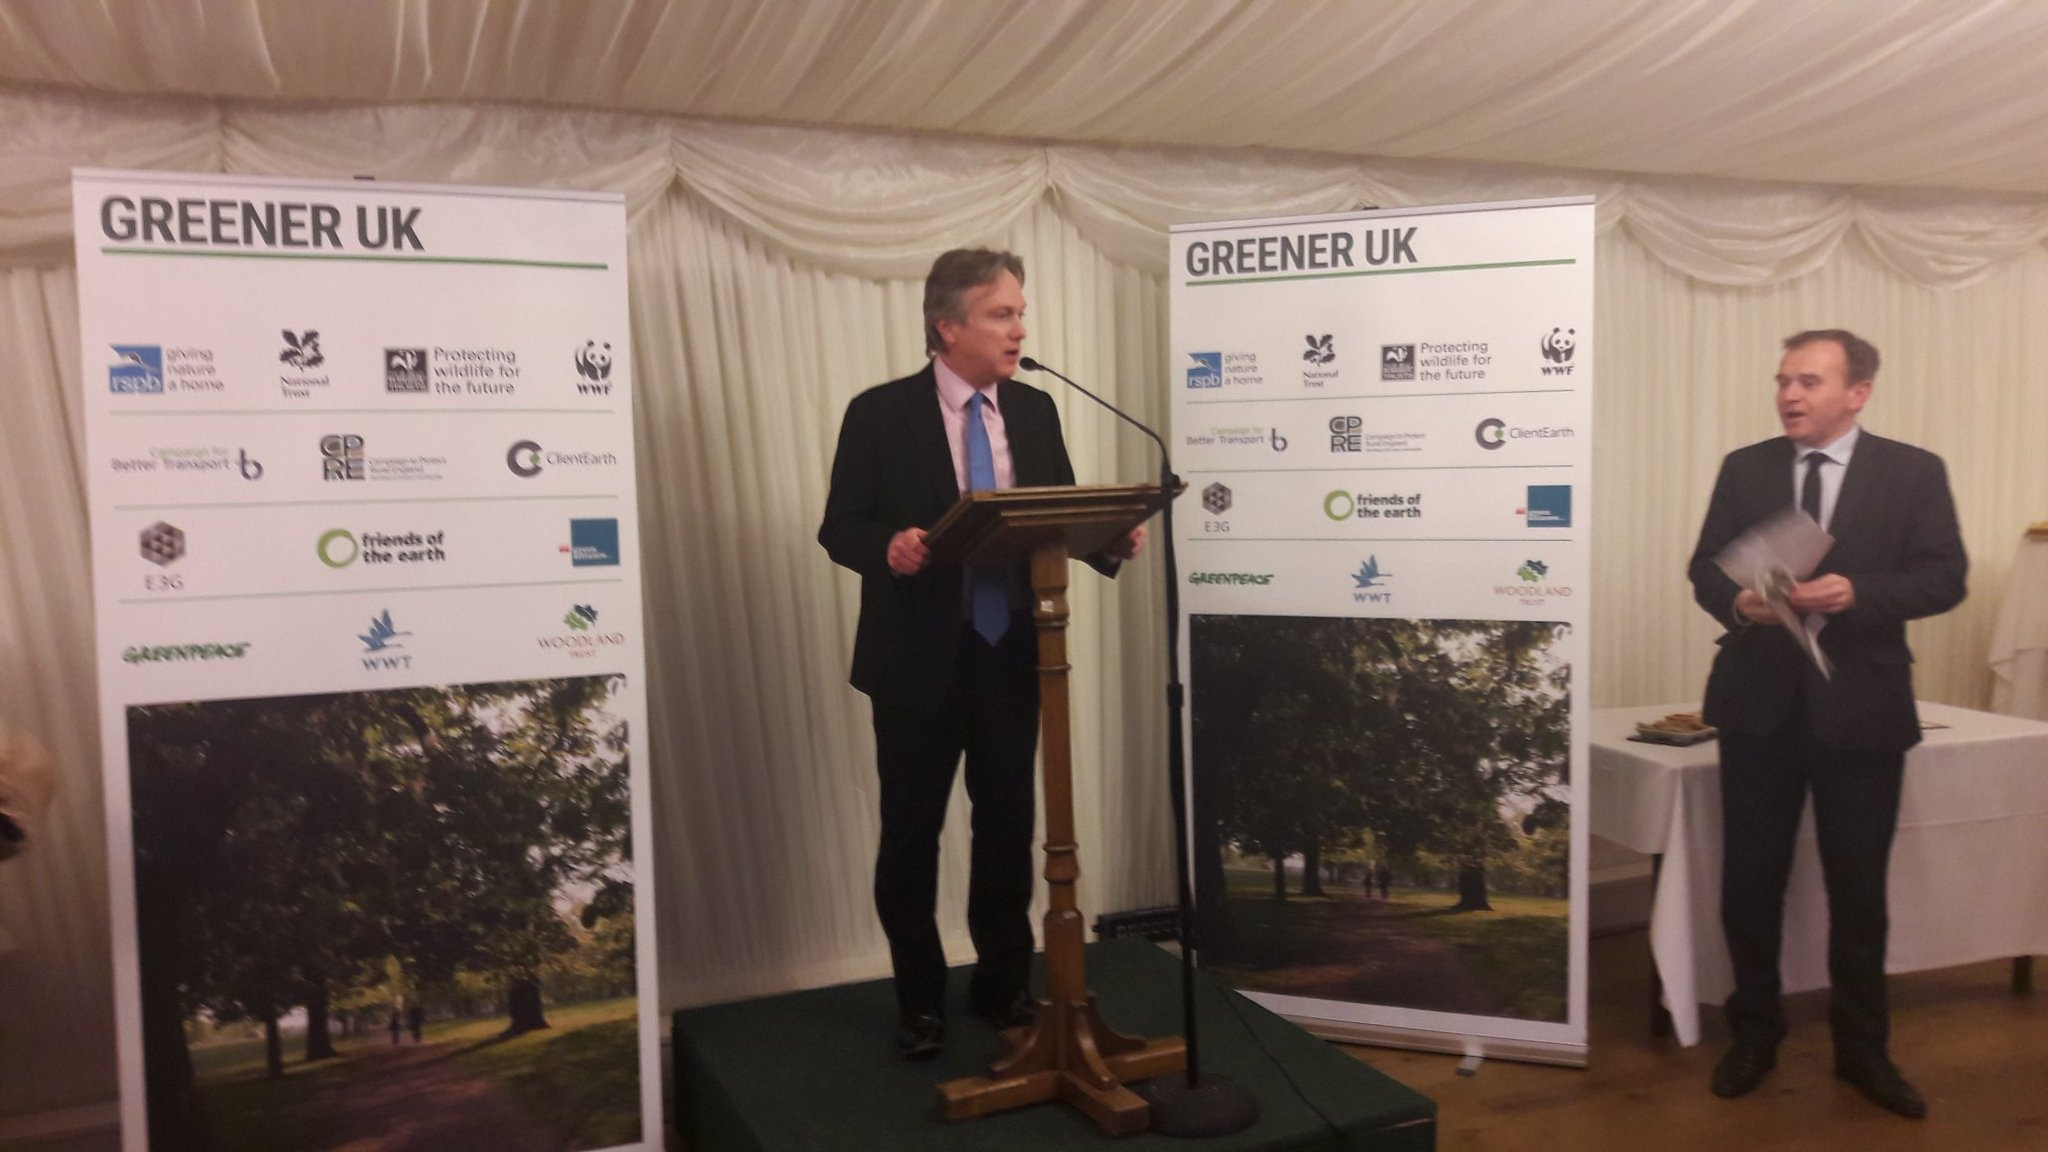 .@HenrySmithMP: important great repeal bill transposes all environmental law #greenerUK https://t.co/kv1Q1CkCy1